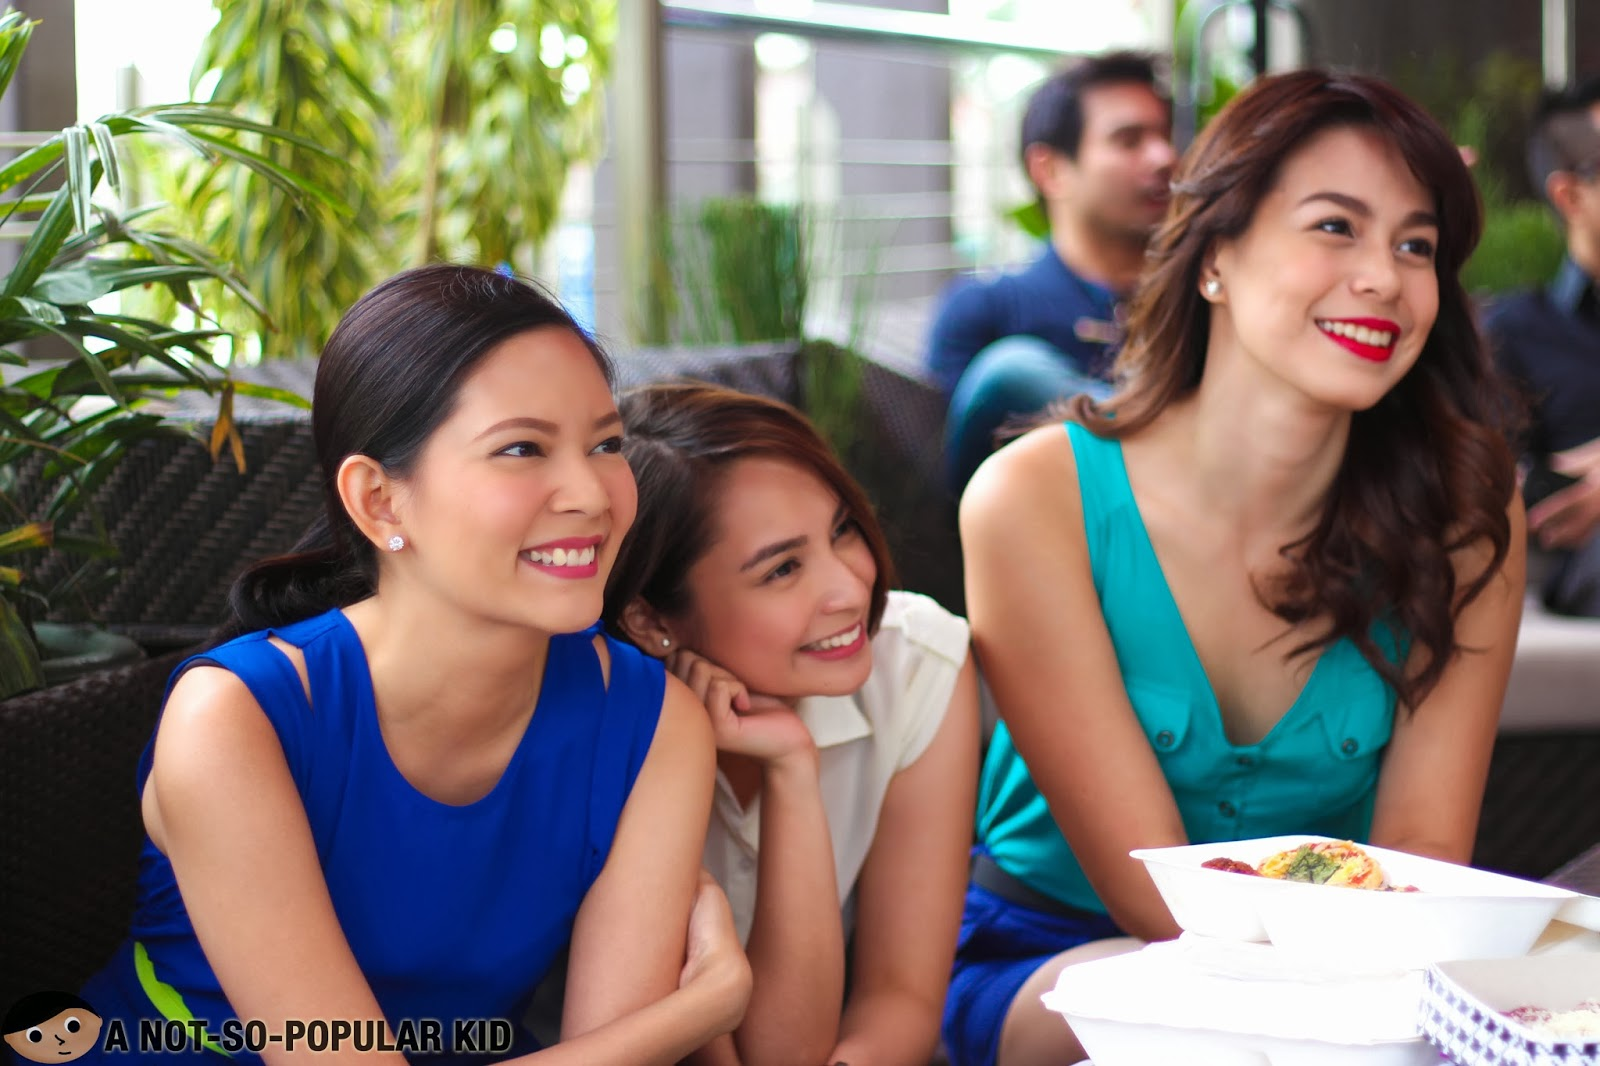 Food for the Heart featuring Chynna Ortaleza, Ryza Cenon and Bettinna Carlos